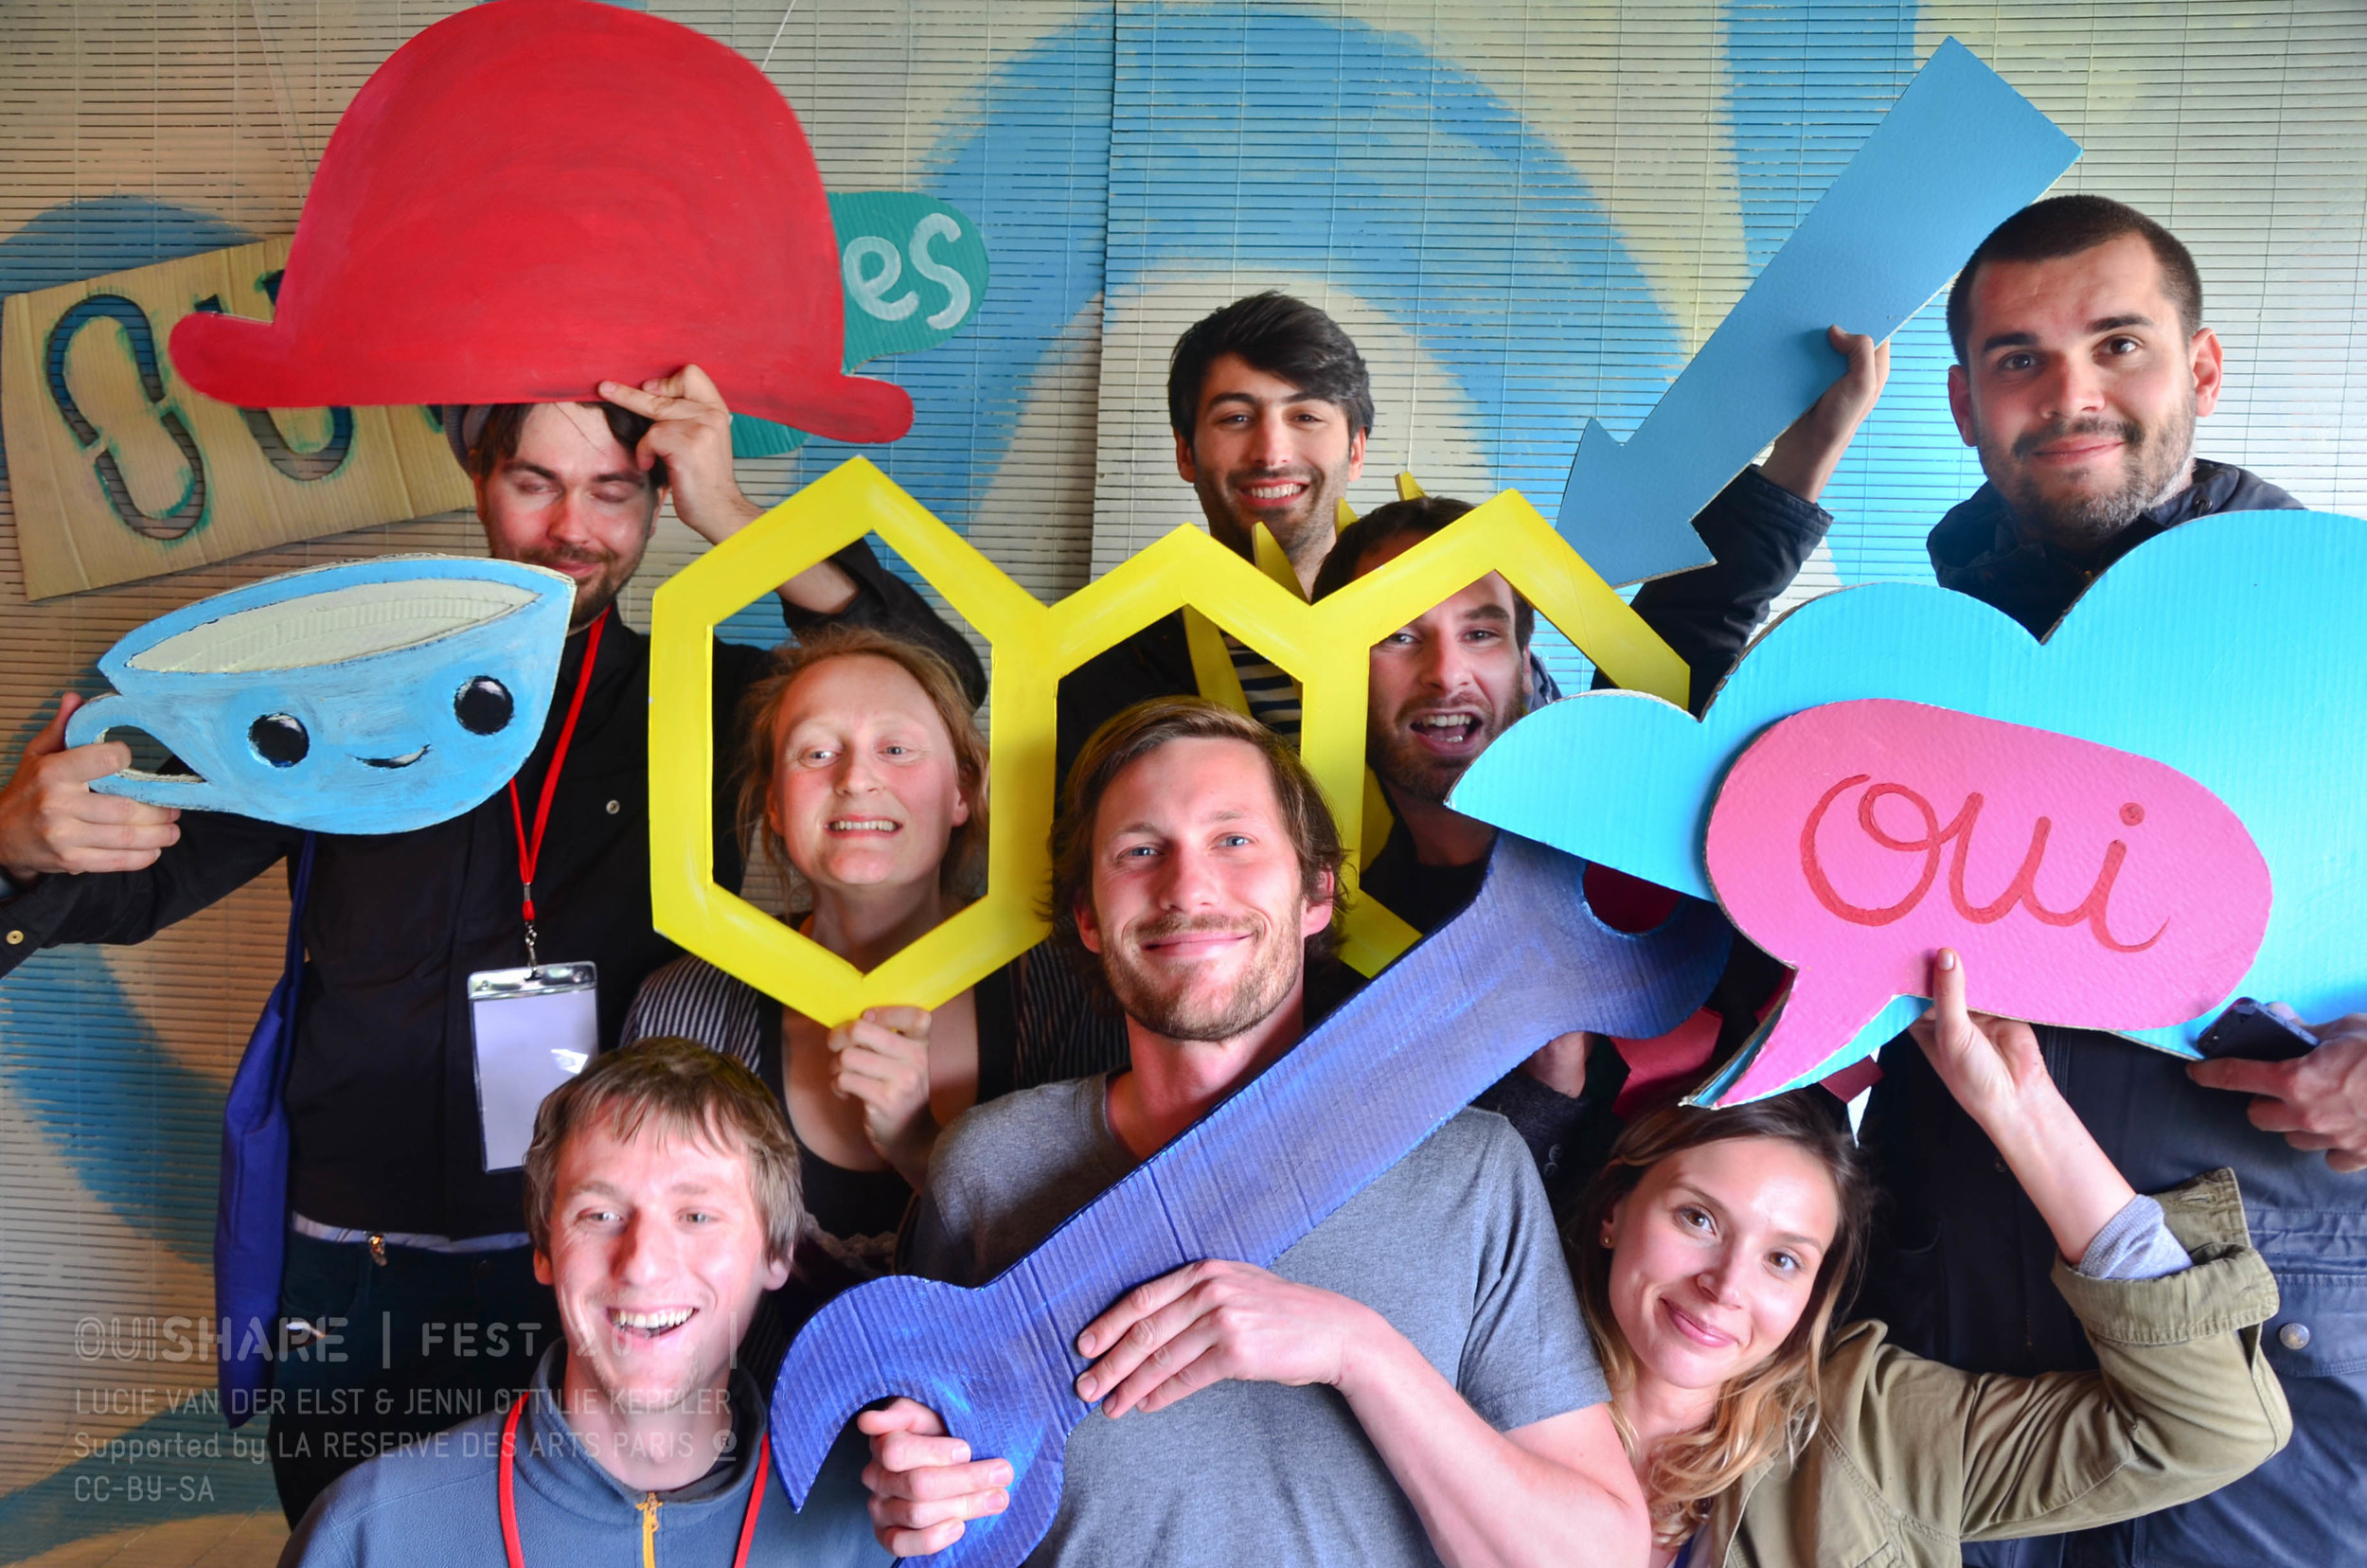 The Open Source Hardware Crew gathering for a picture in the OUIShapes Photo Booth